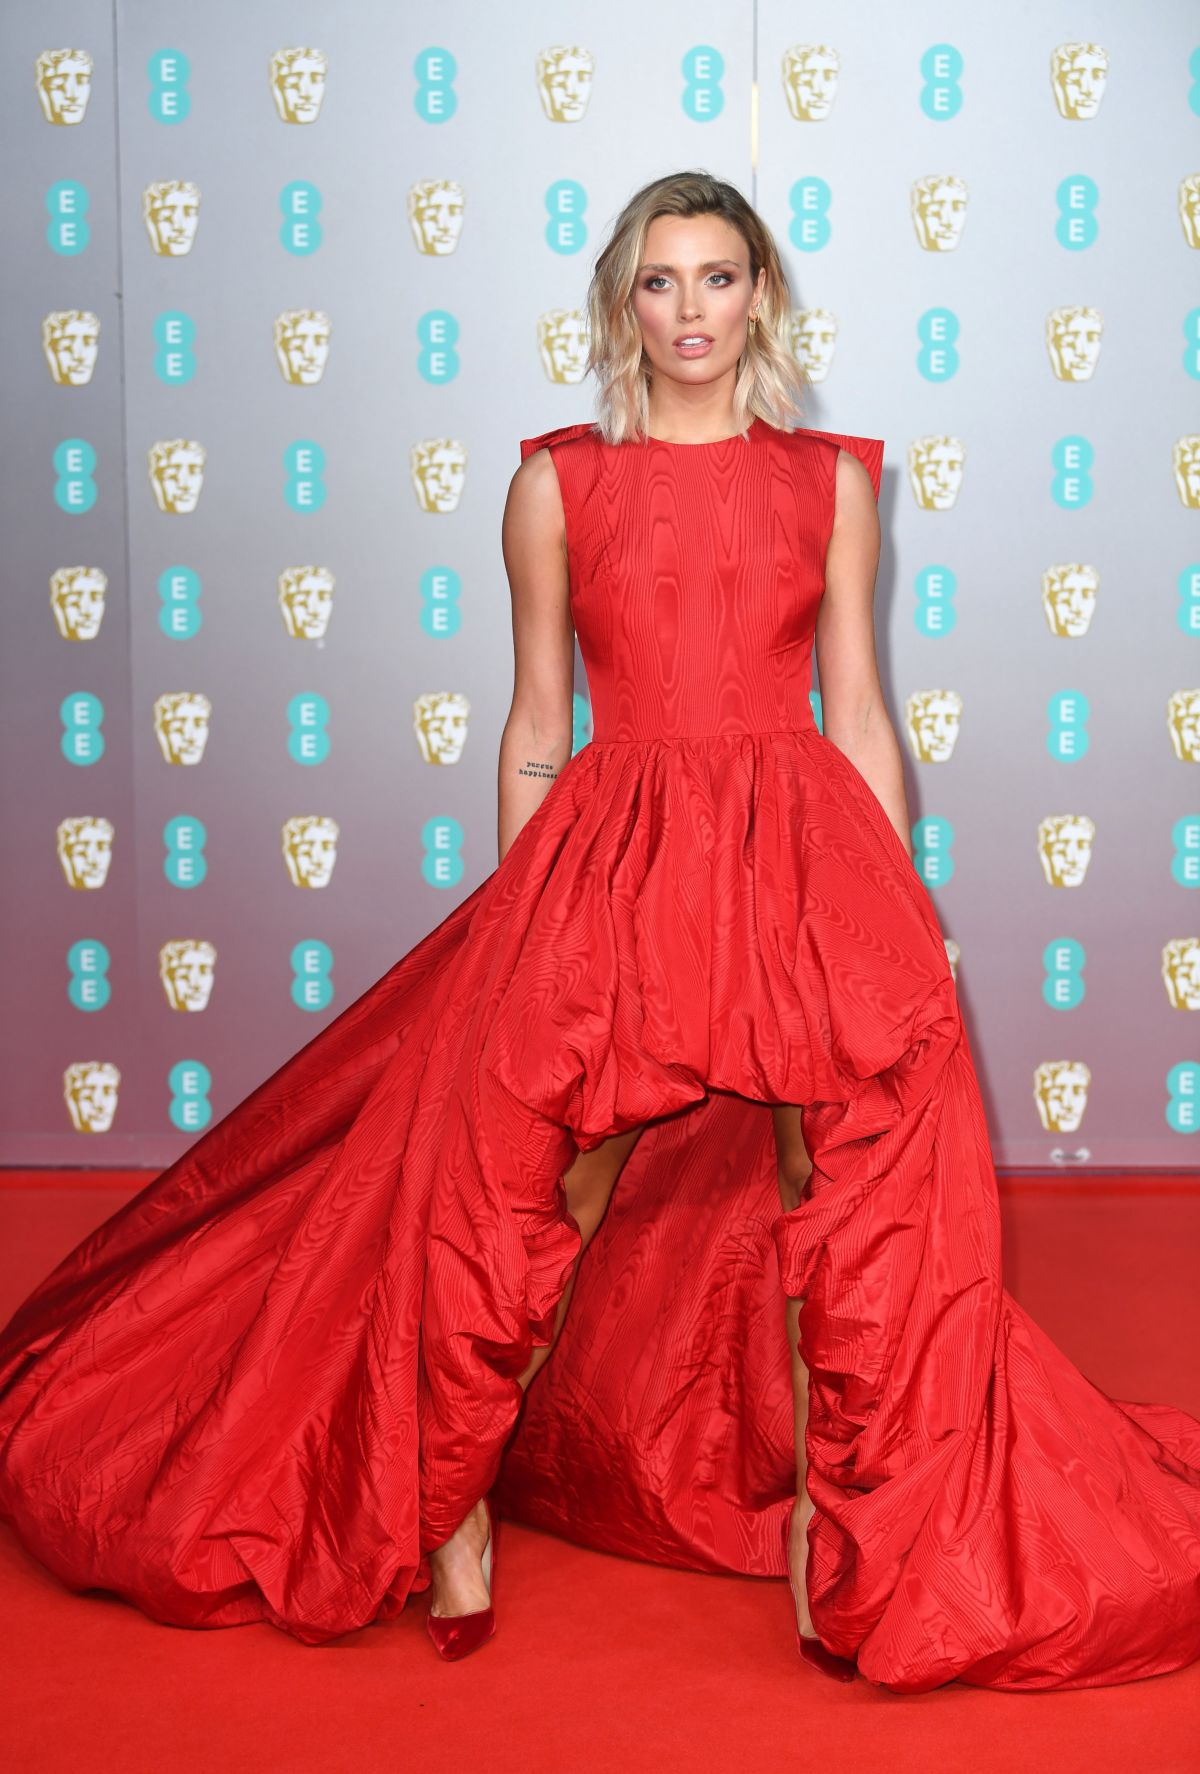 Wallis Day At Ee British Academy Film Awards 2020 In London Superstars News